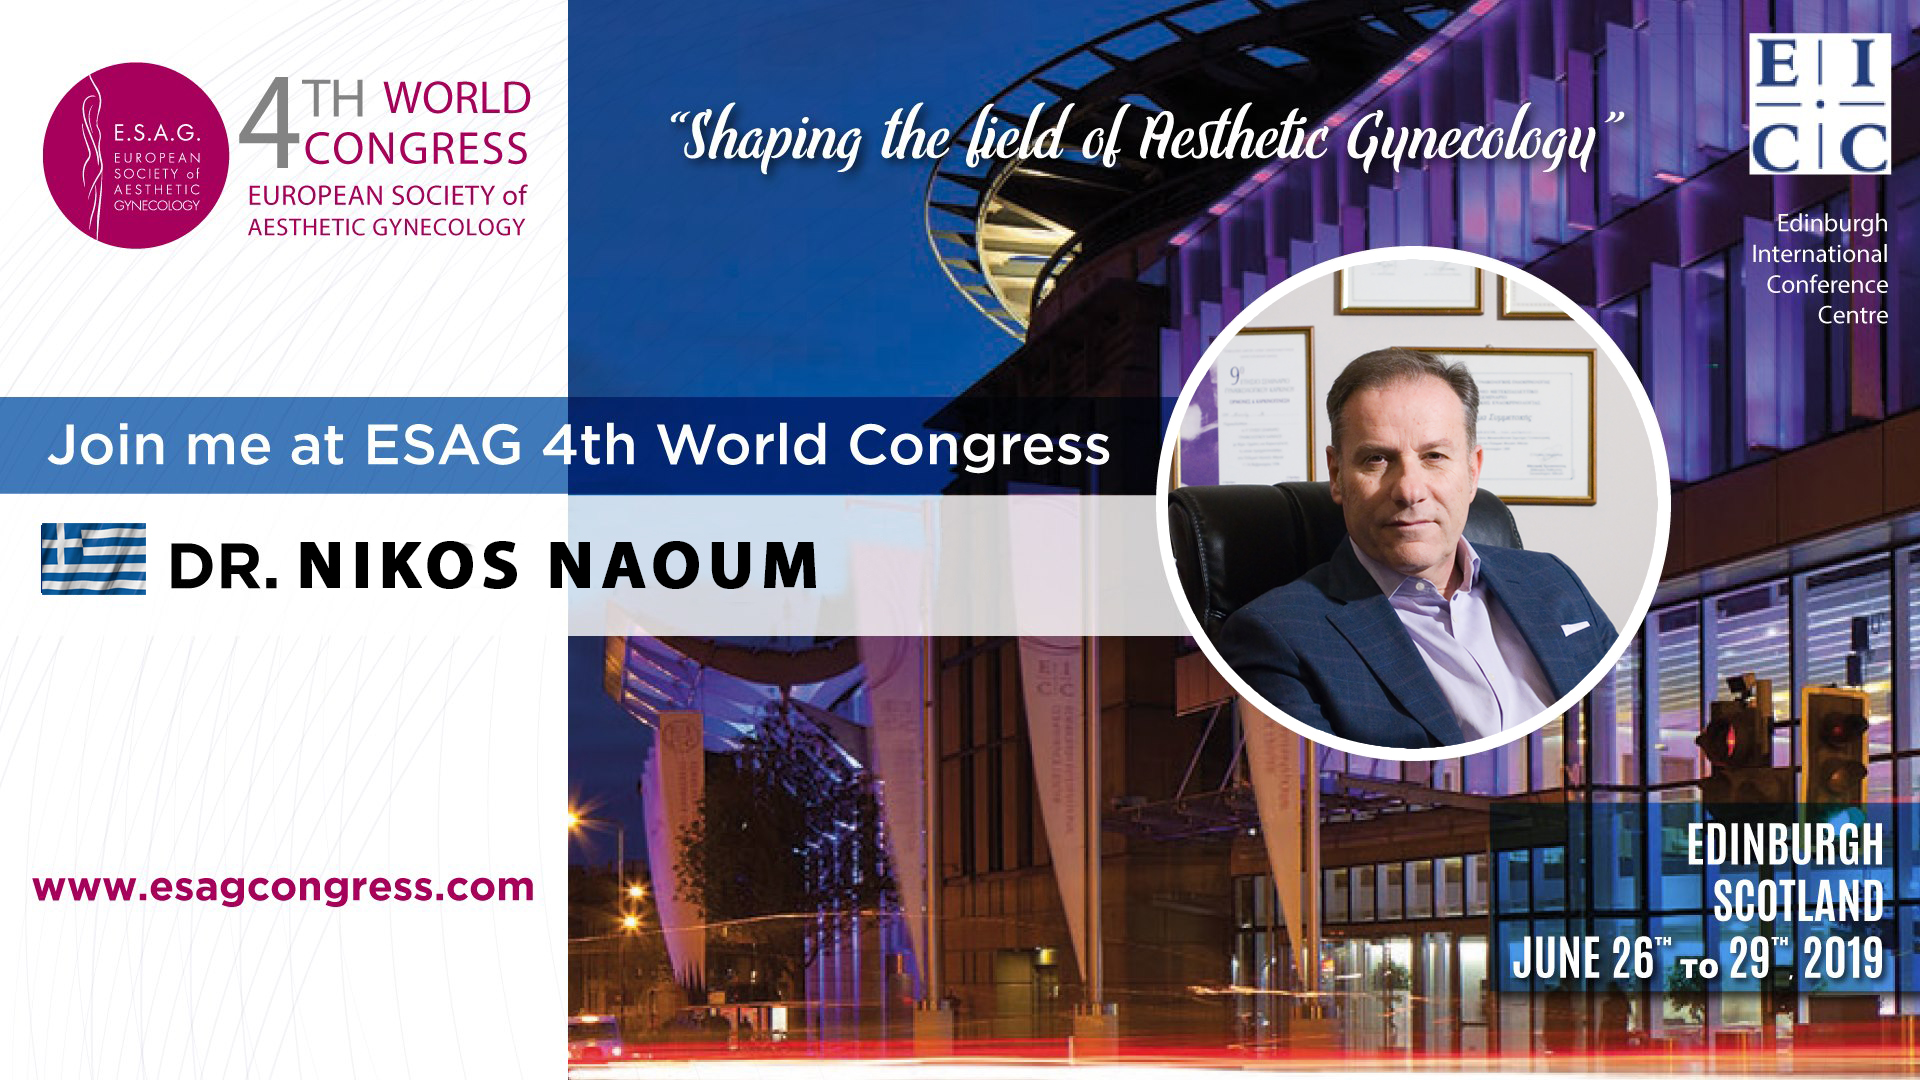 Dr. Naoum at the 4TH WORLD CONGRESS of ESAG